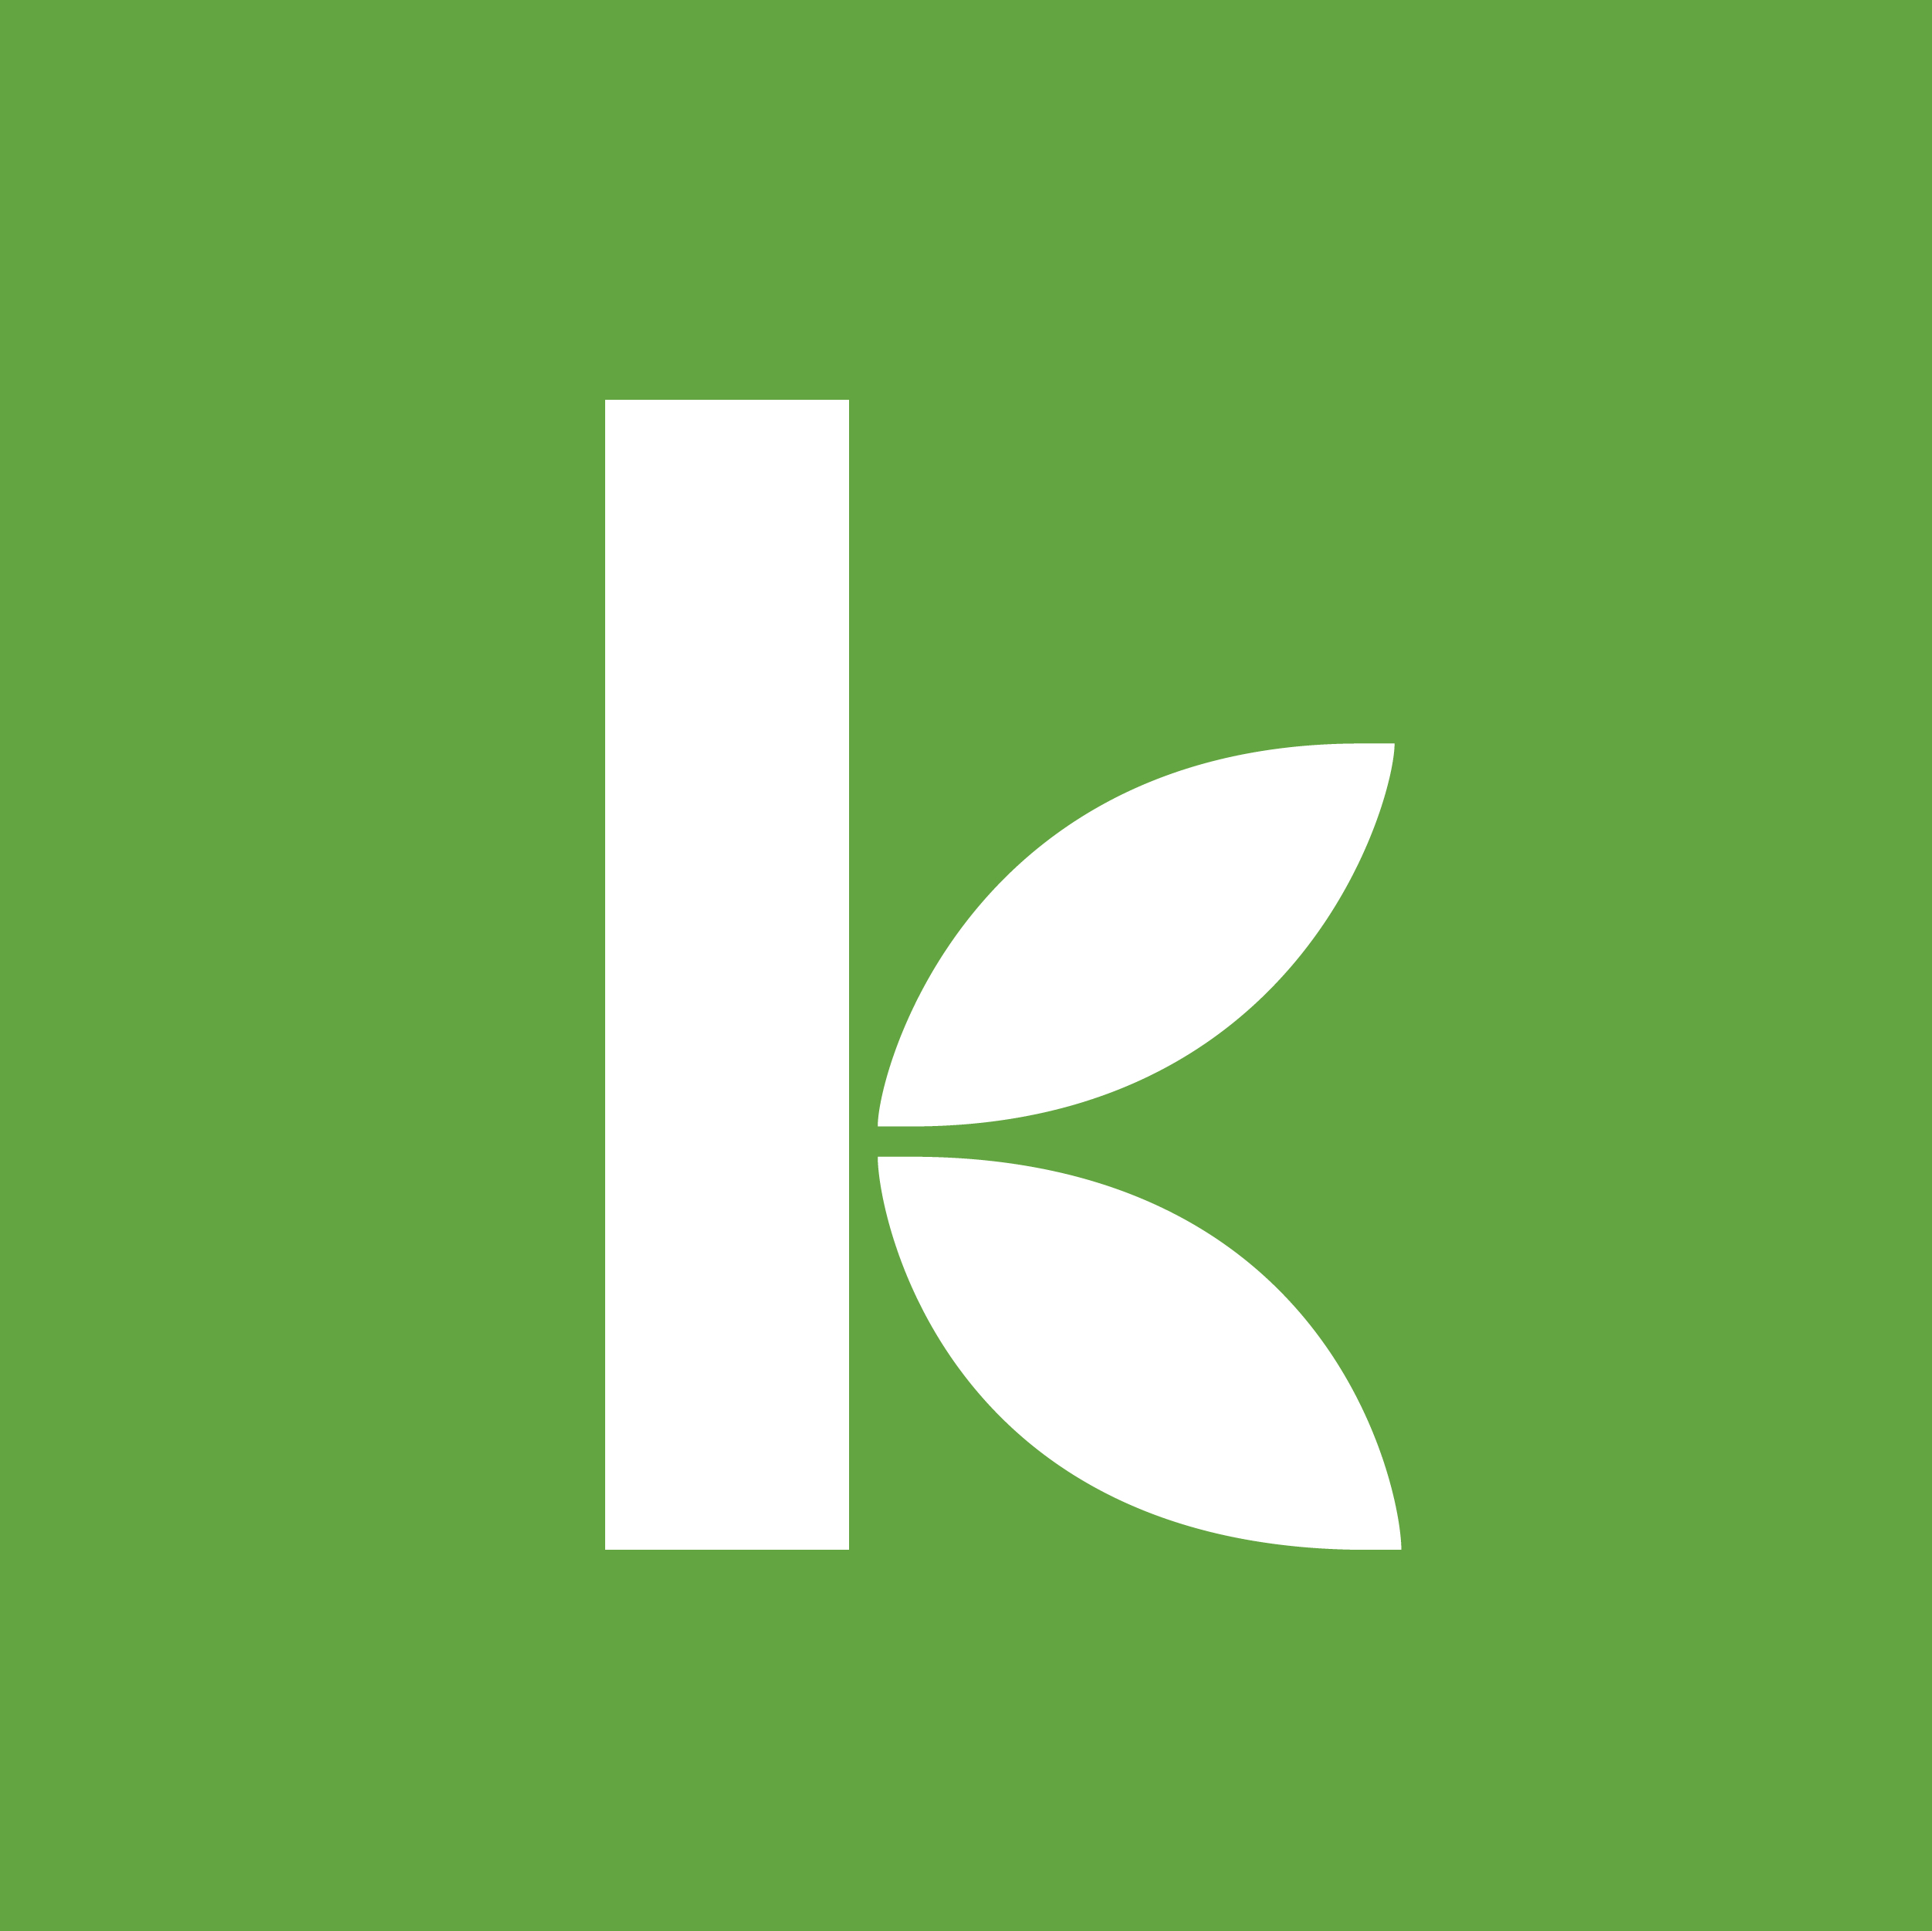 Lender > Al Cannistra from San Antonio, TX, United States | Kiva